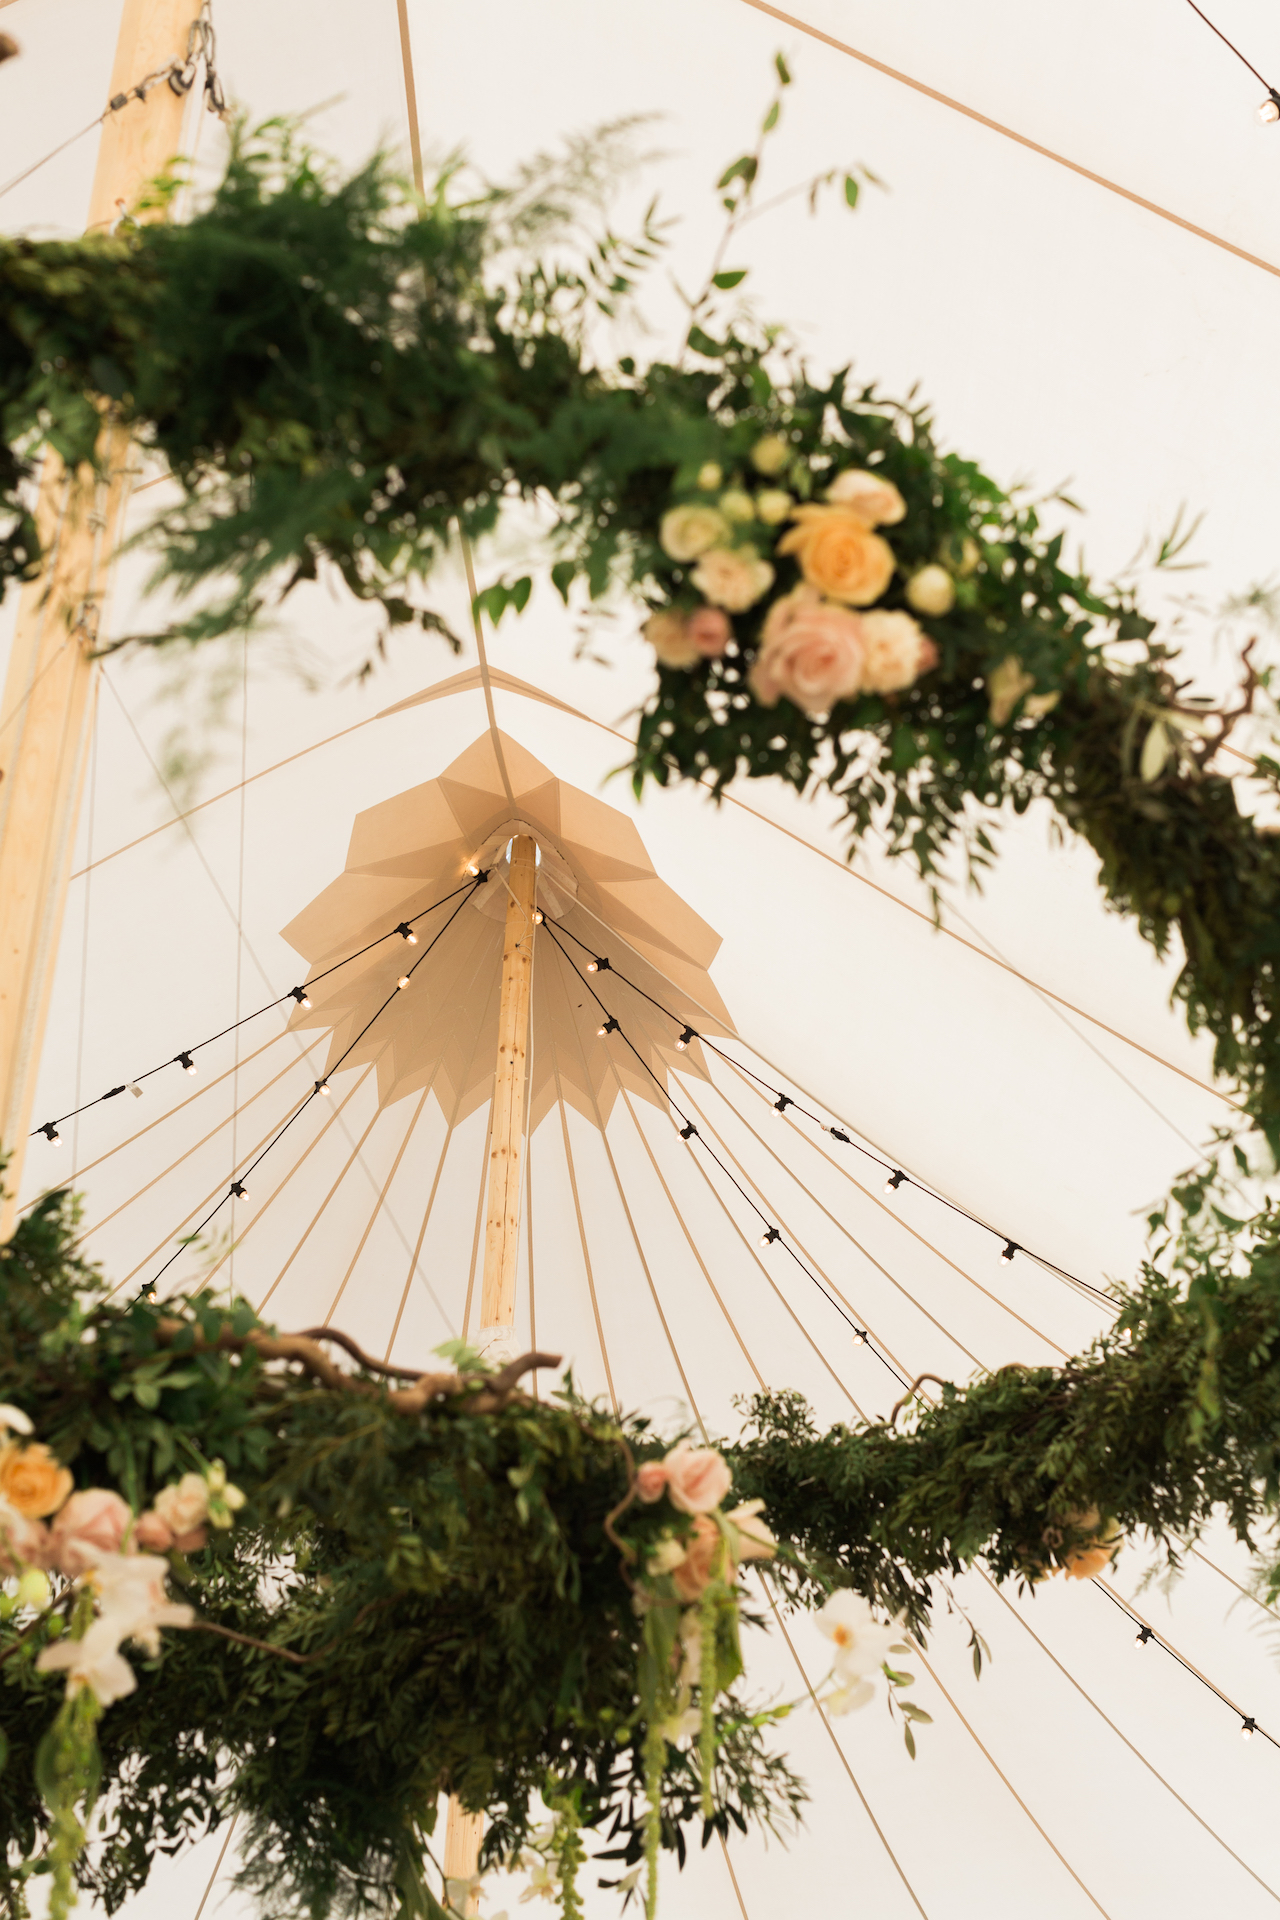 PapaKåta Spring Open Weekend Sperry Tent captured by Lucy Davenport Photography: Two Tier Floral Hoop by Leafy Couture